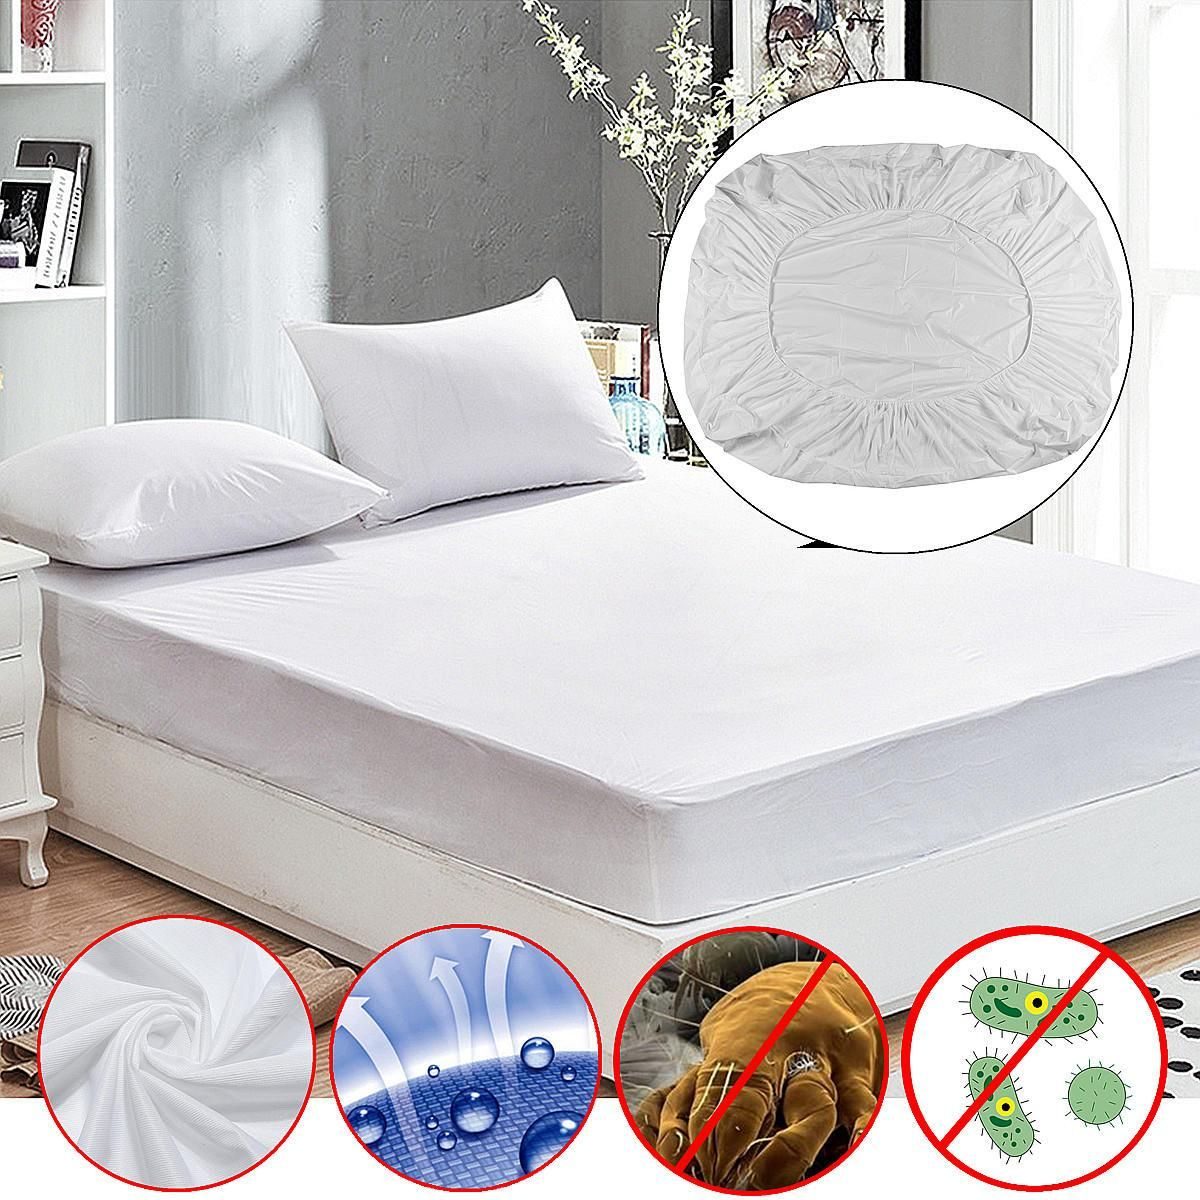 Anti Dust Mite Mattress Protector Cover Breathable Fitted